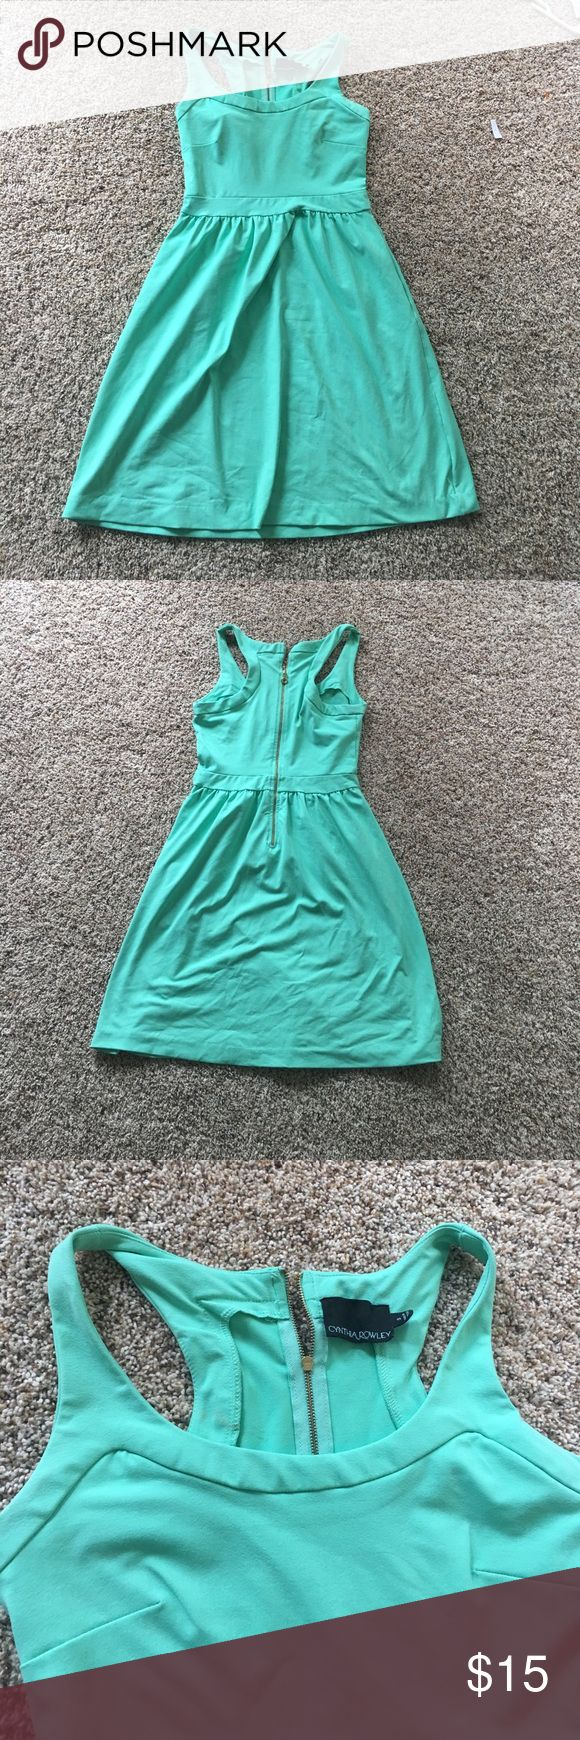 Women's dress Women's mint green scuba dress. Fabric is very stretchy. HAS POCKETS! Razorback. Brand is Cynthia Rowley. No padding on the chest. Size small! Zipper on the back! So cute! Just not my style for going out!! Cynthia Rowley Dresses